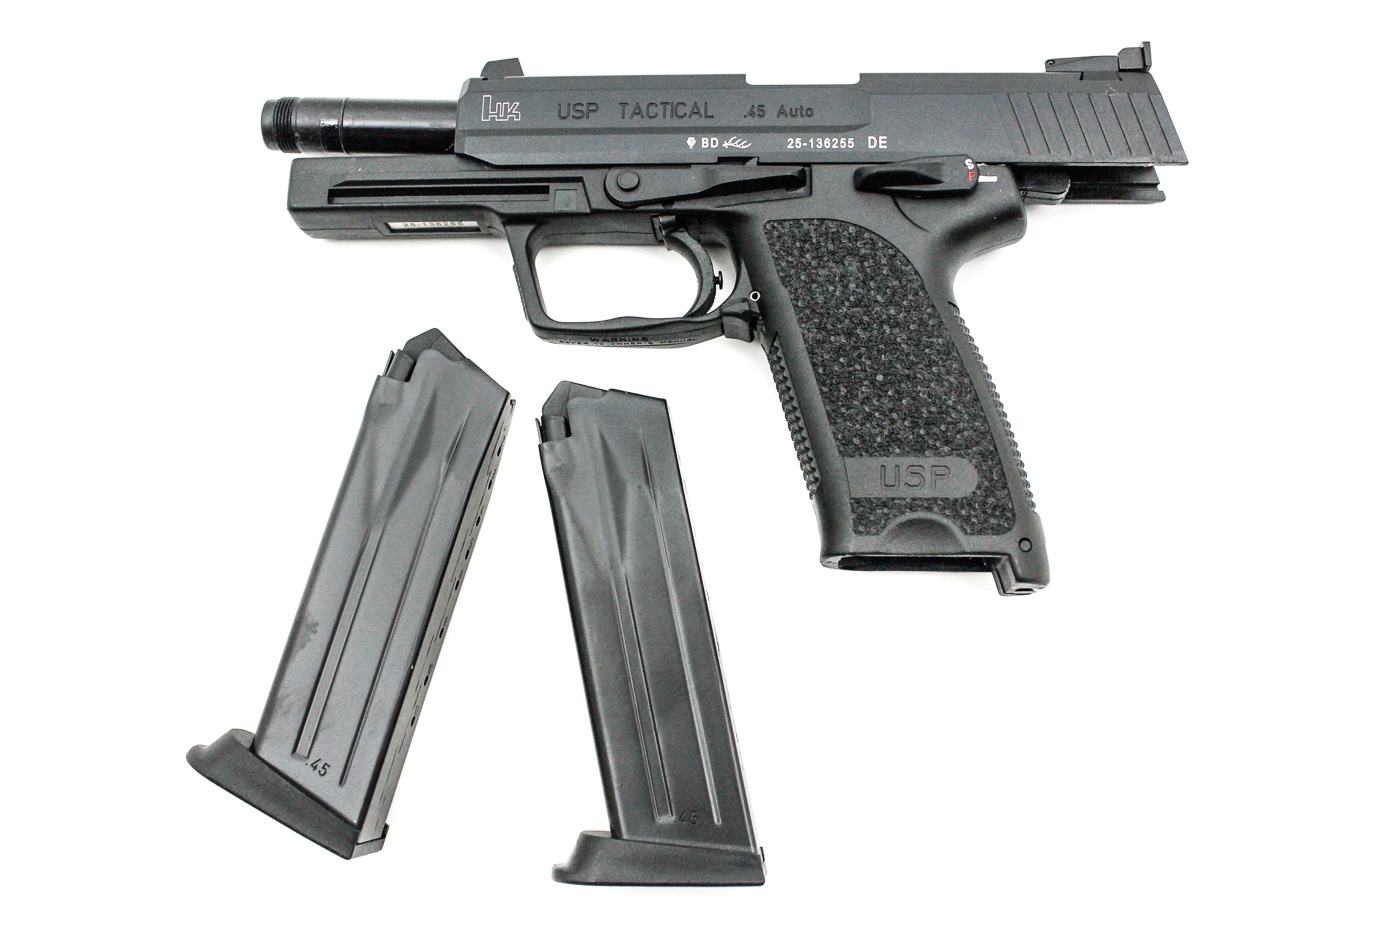 Heckler & Koch USP Tactical - Image 2